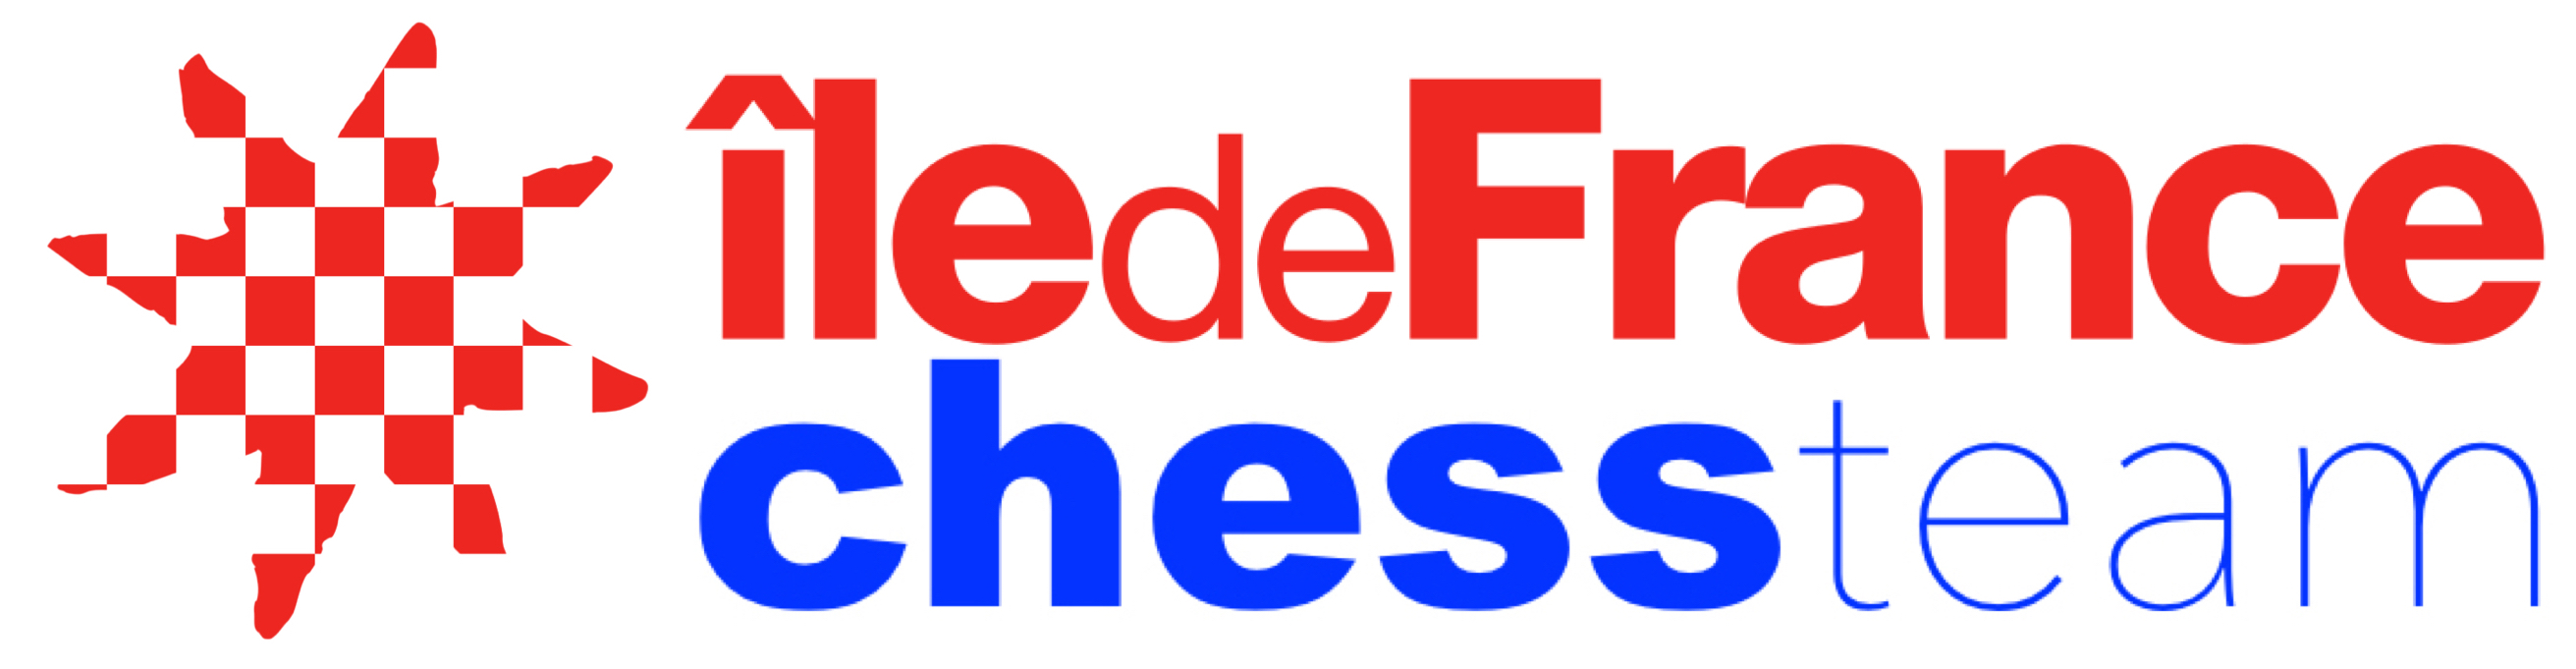 LOGO IDF Chess Team